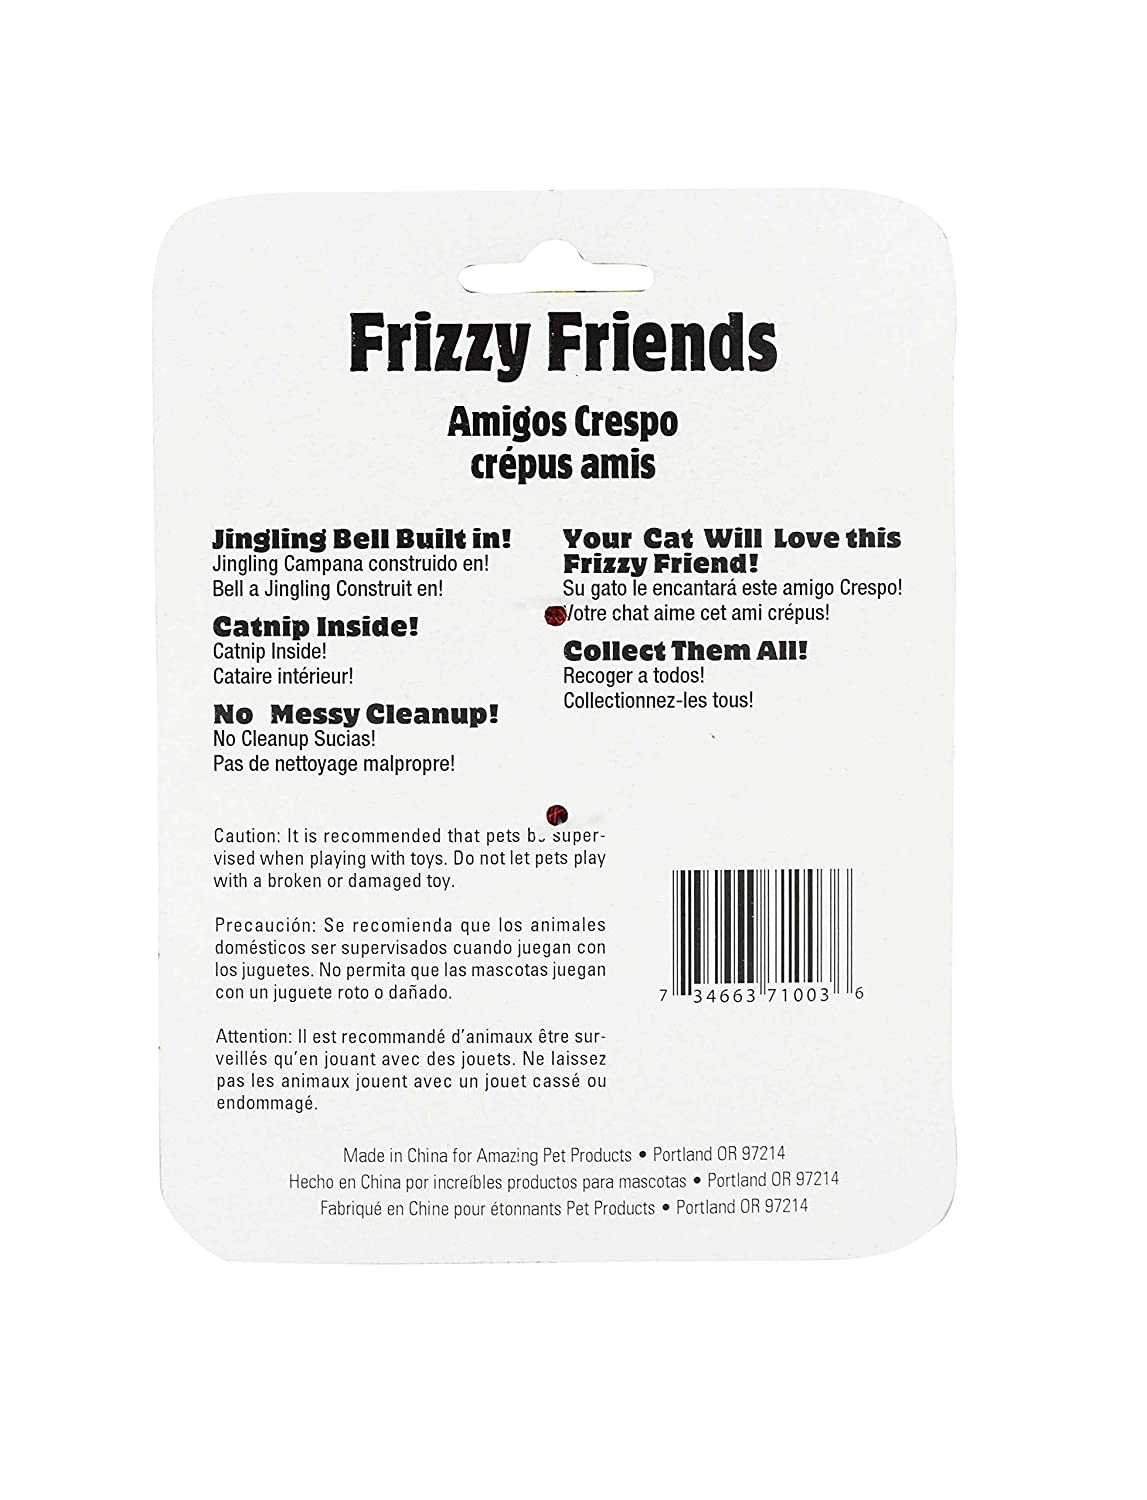 Amazon.com : Amazing Pet Products Frizzy Friends, Catnip Toy with Bell, Red : Pet Supplies